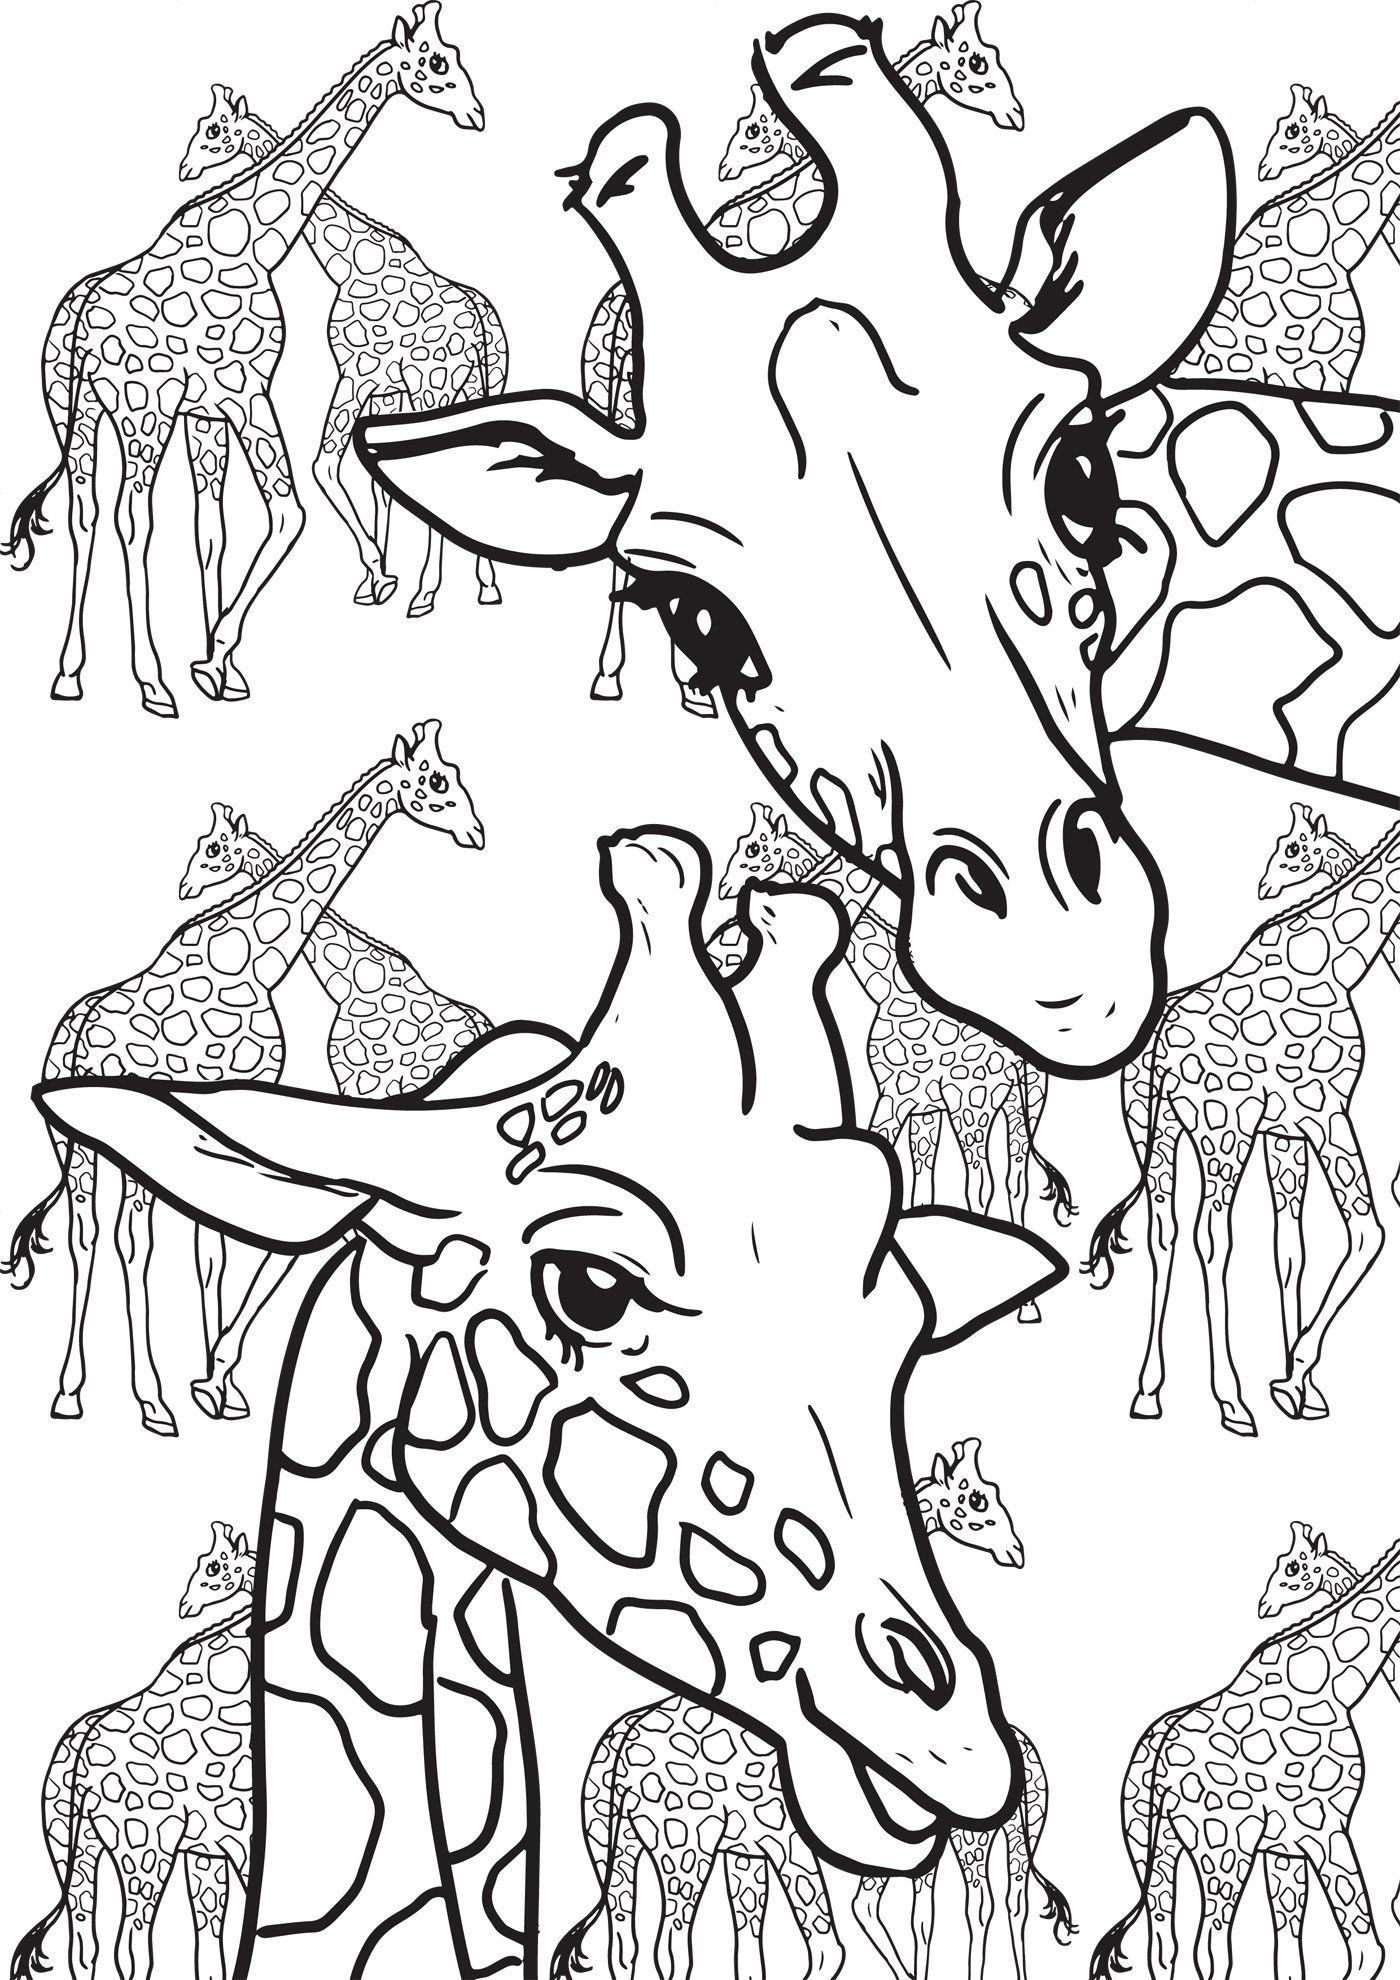 Small and large animals critters: My first art therapy - 100 ...